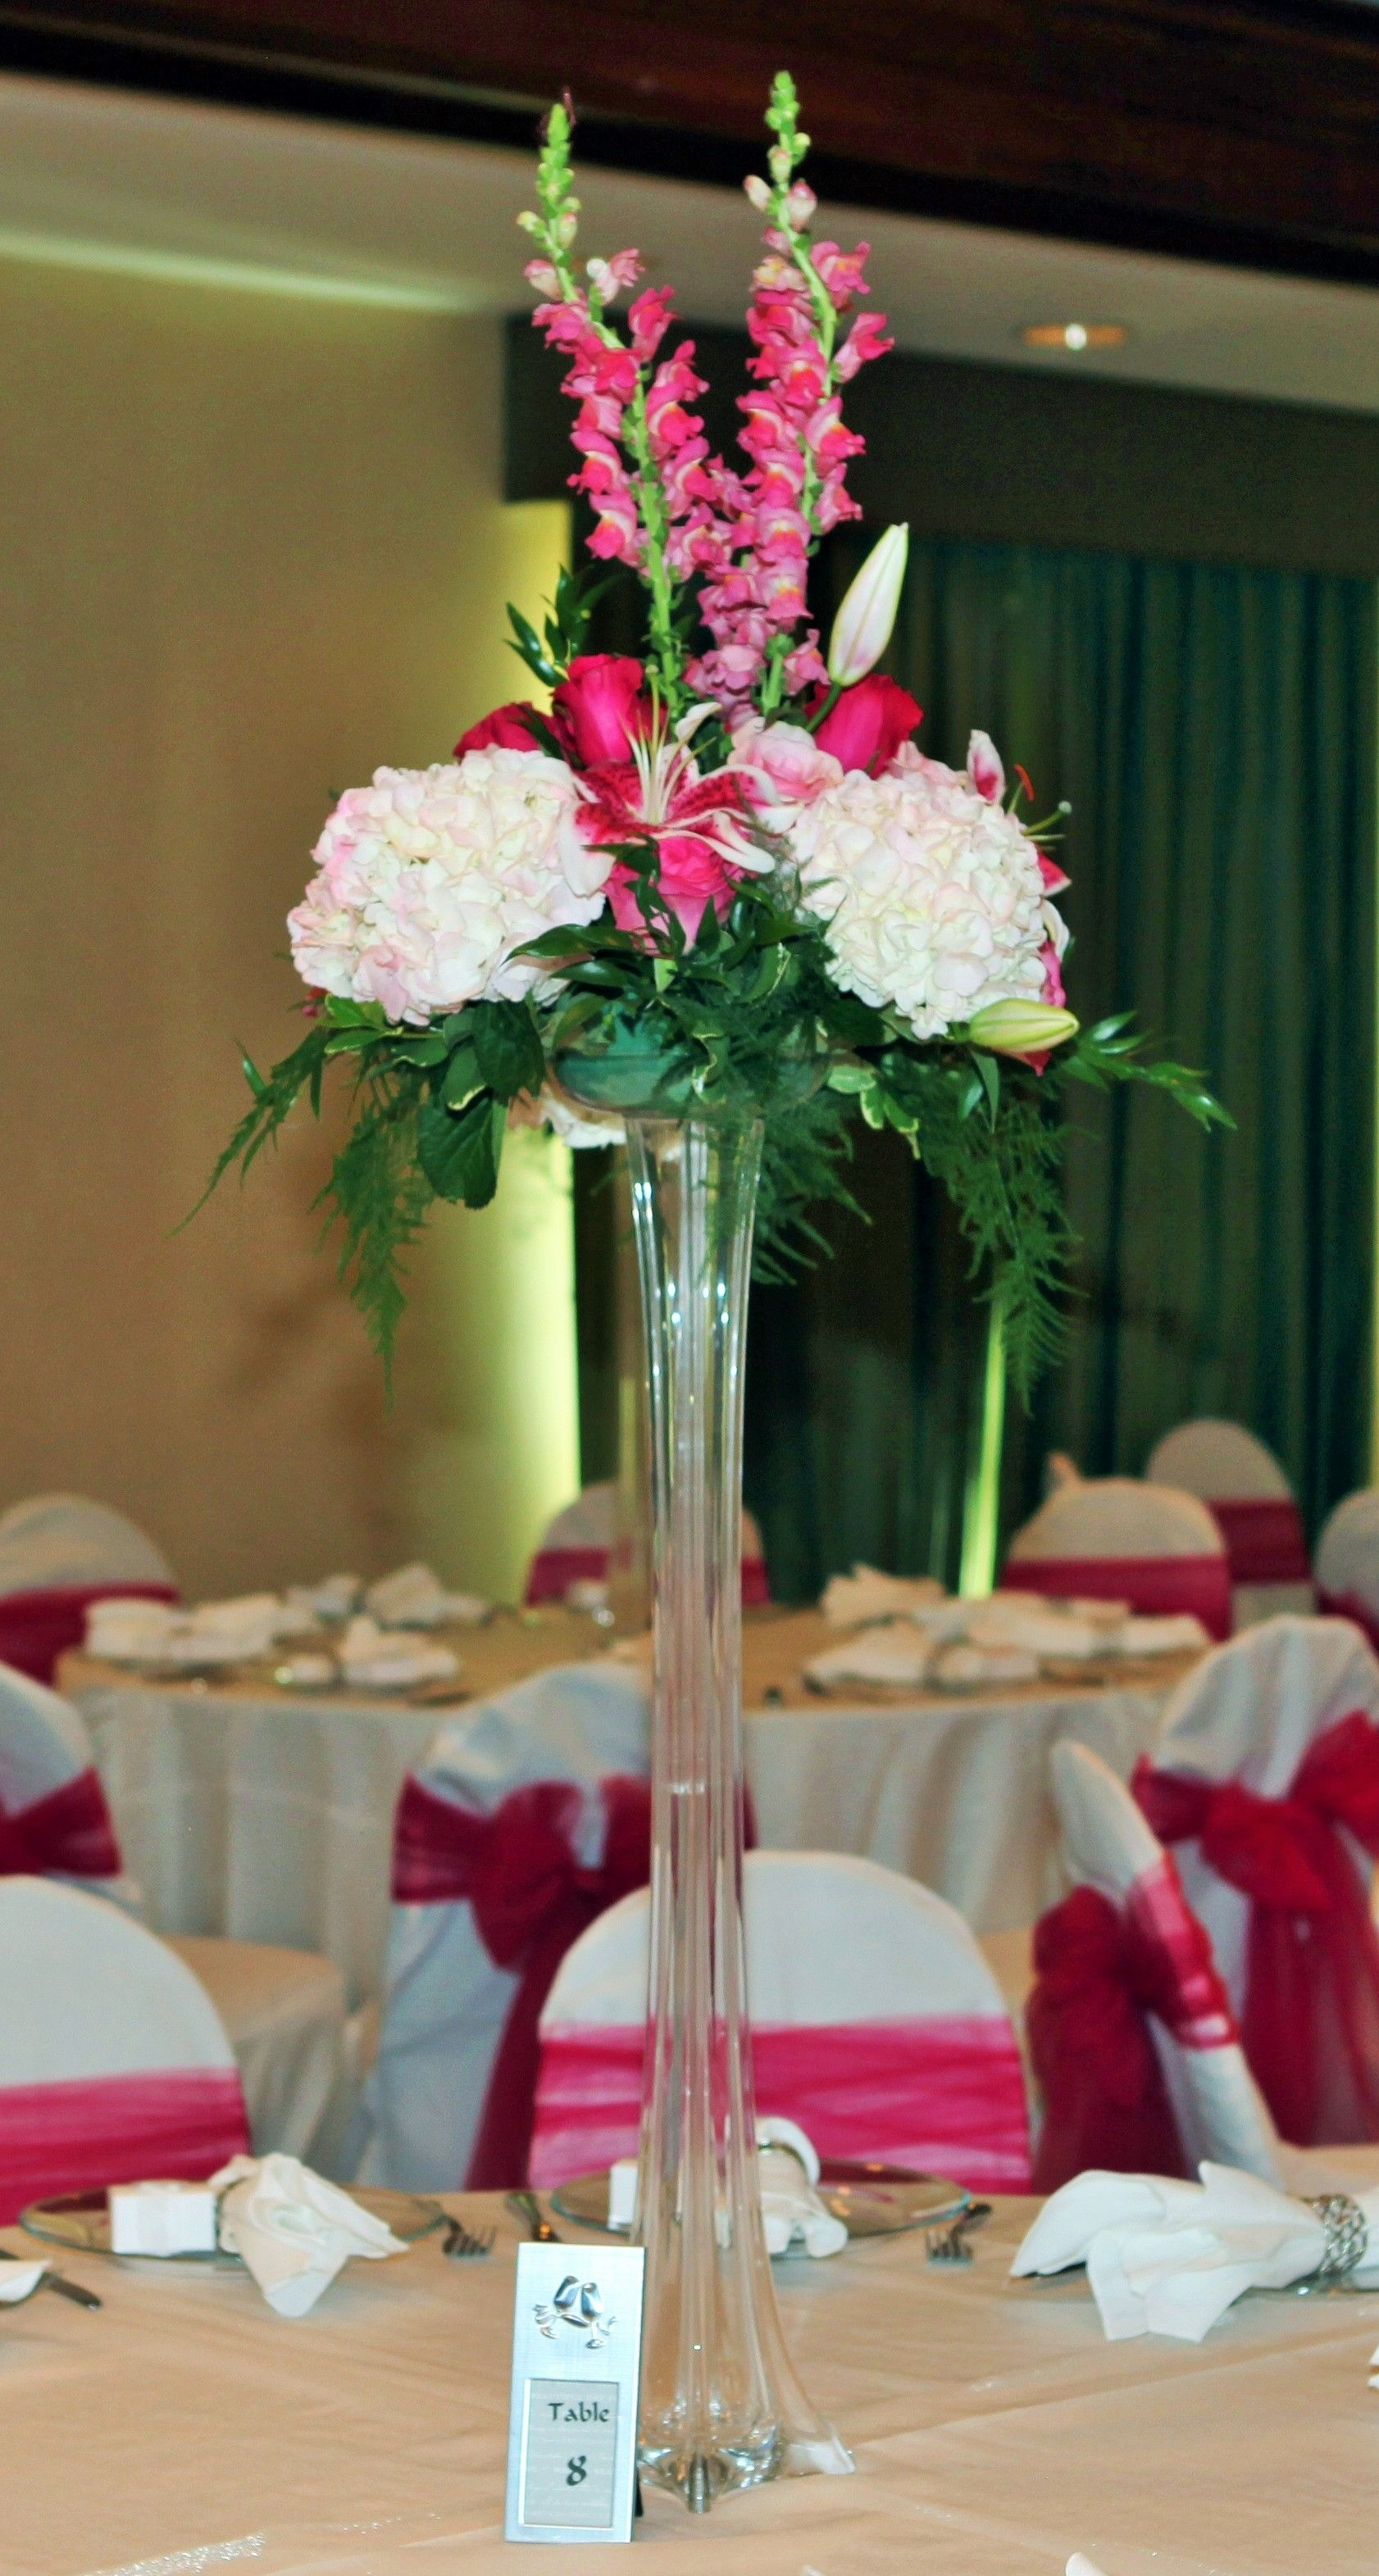 Tall Glass Vase Wedding Centerpiece with White and Pink Floral